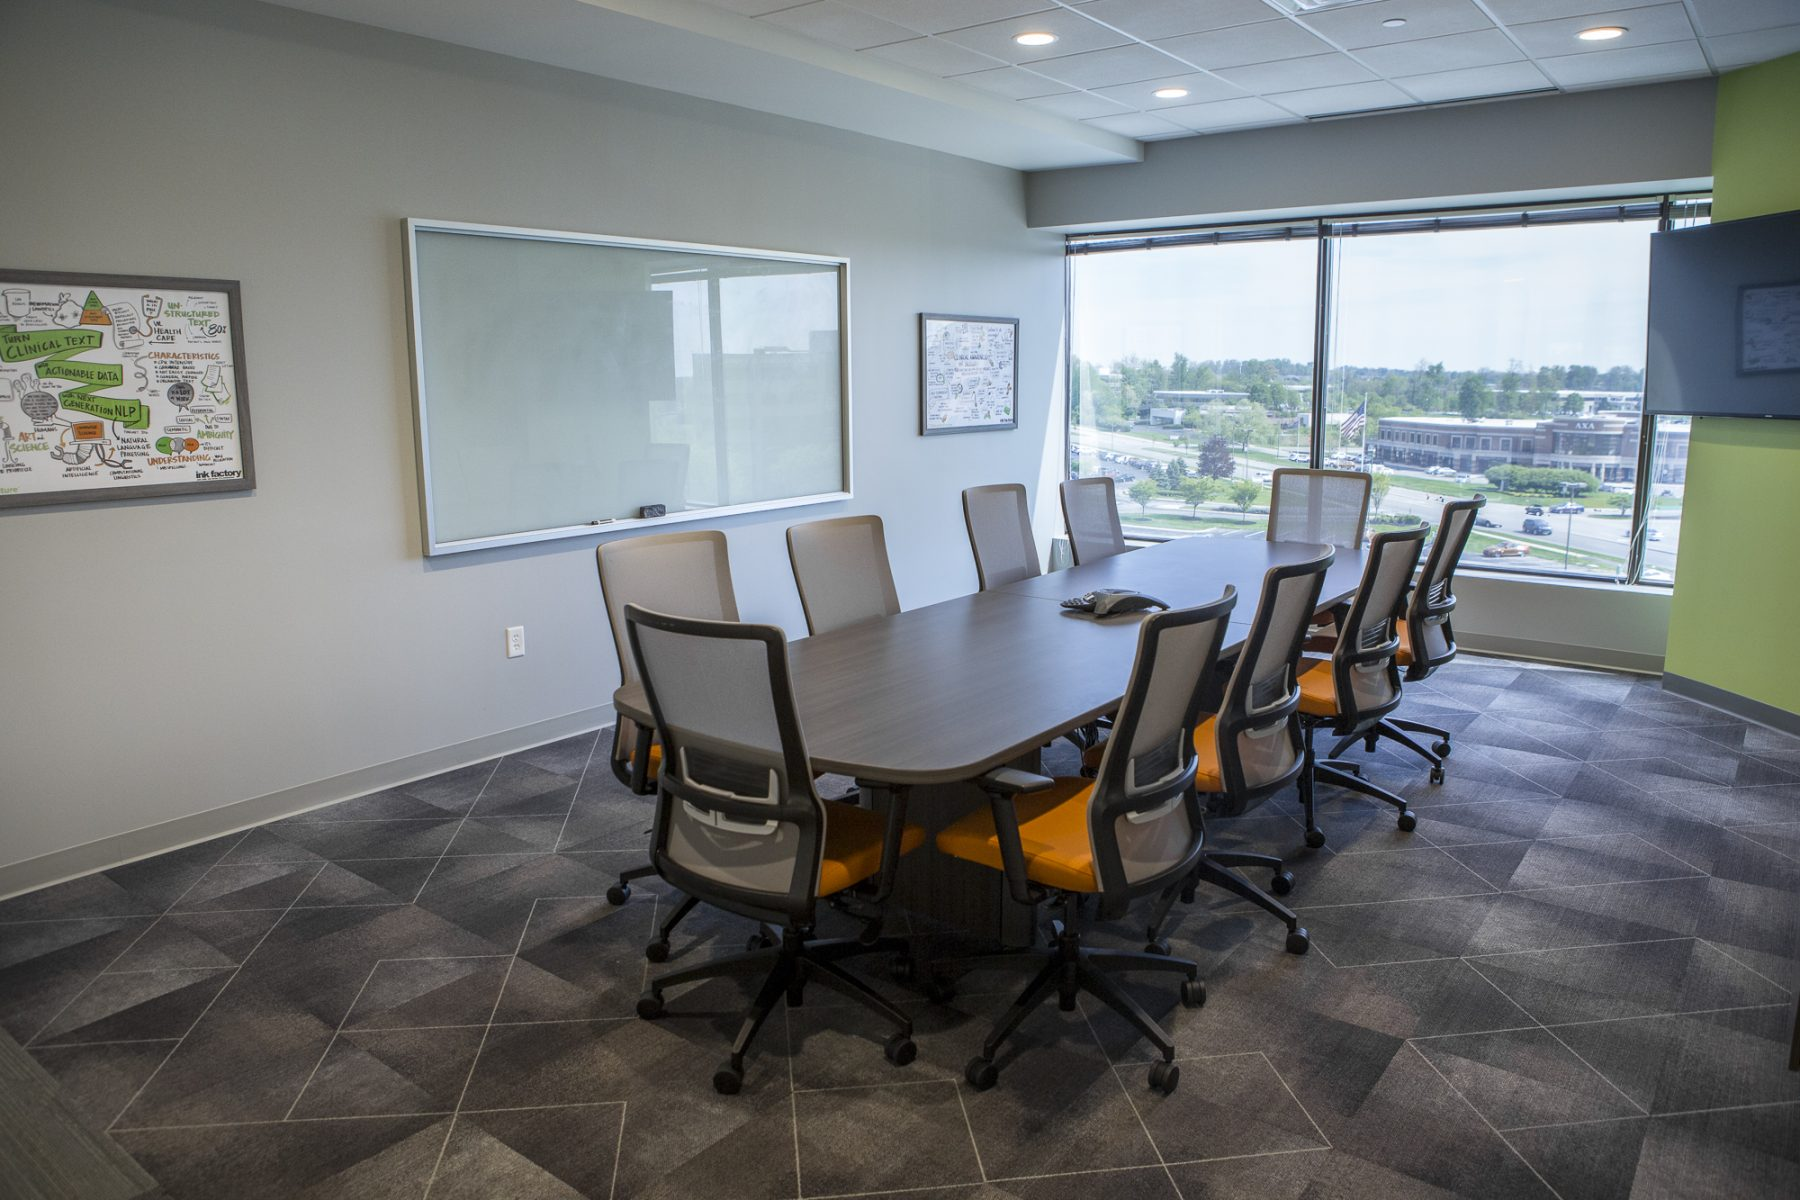 clinical-architects-capital-construction-indianapolis-8